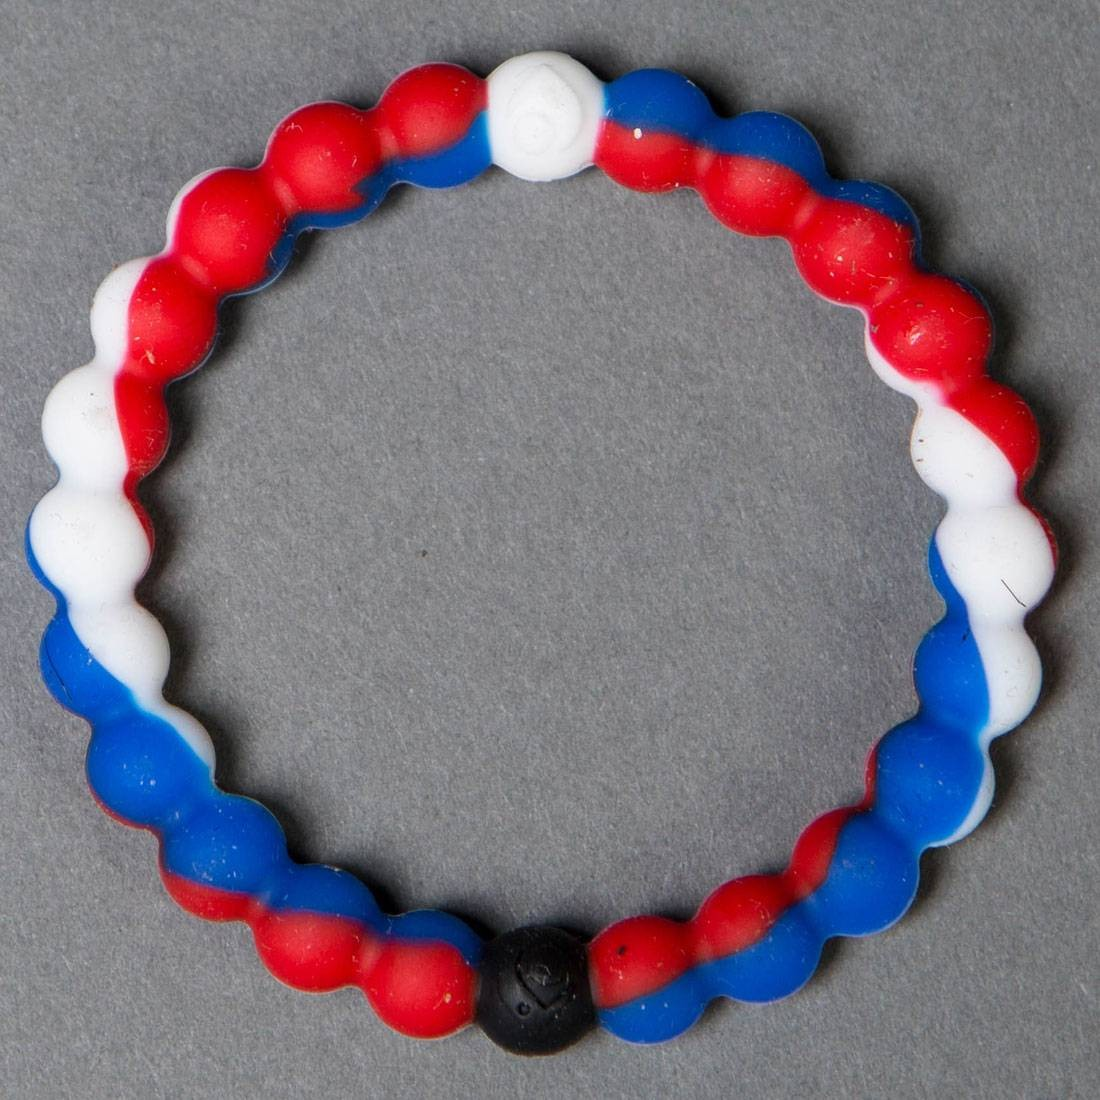 Lokai Bracelet World Usa Red White Blue